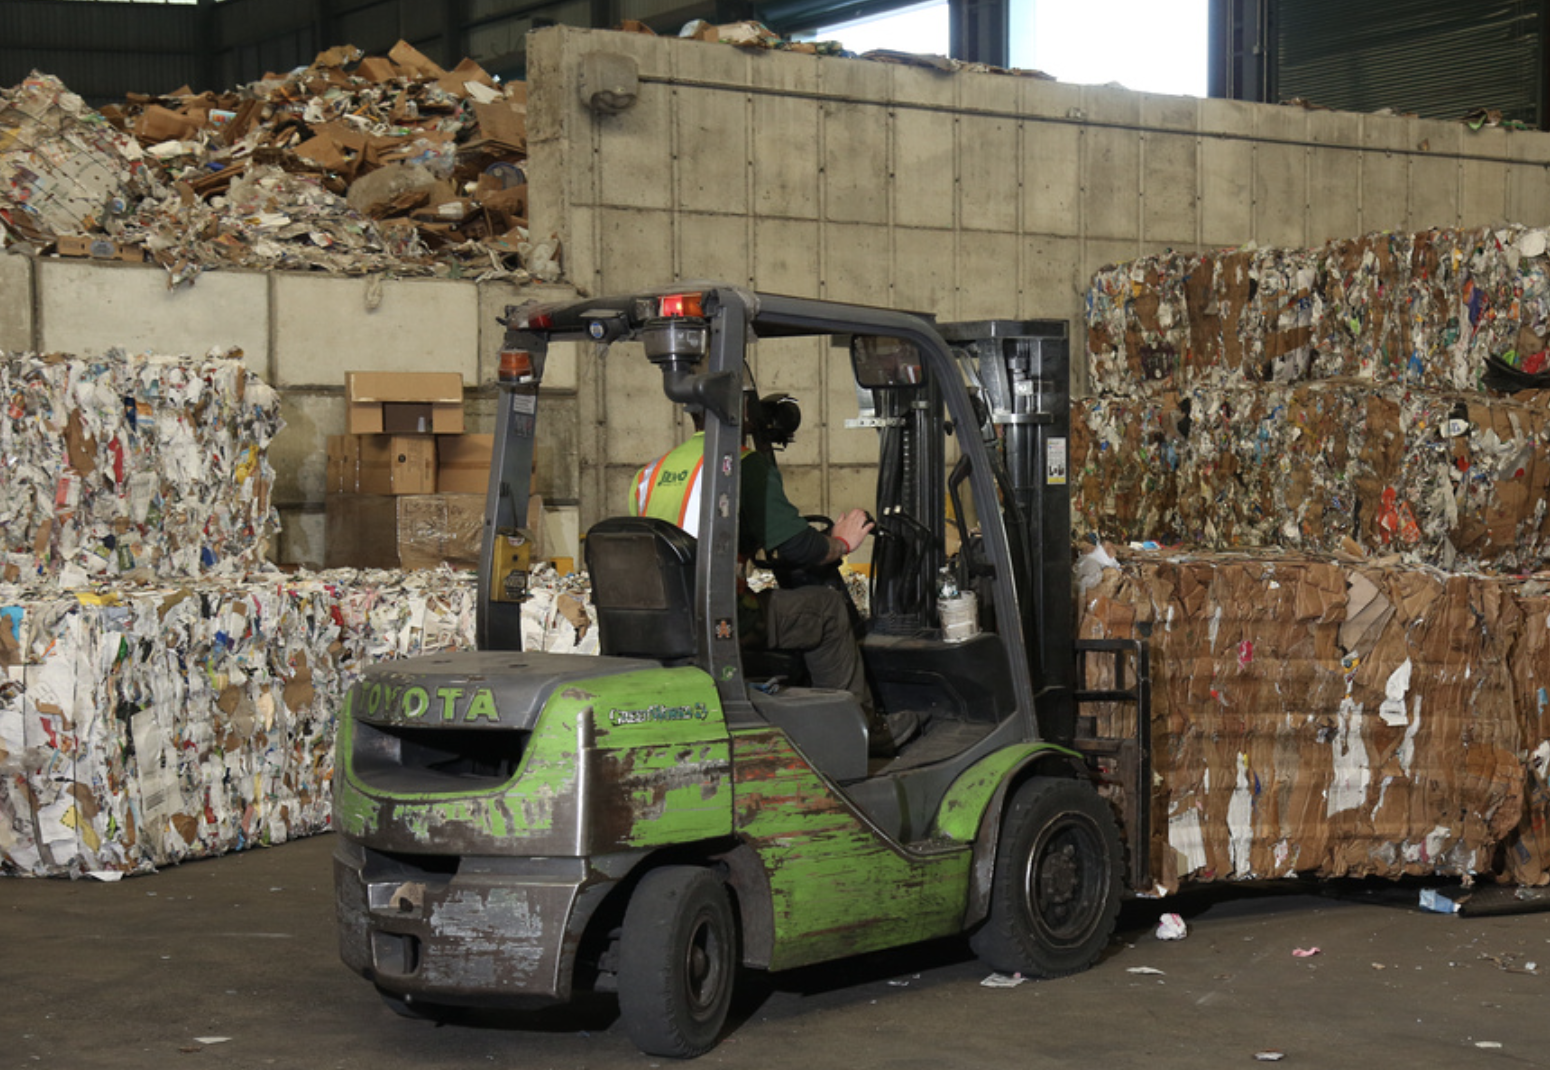 THE FUTURE OF WASTE MANAGEMENT